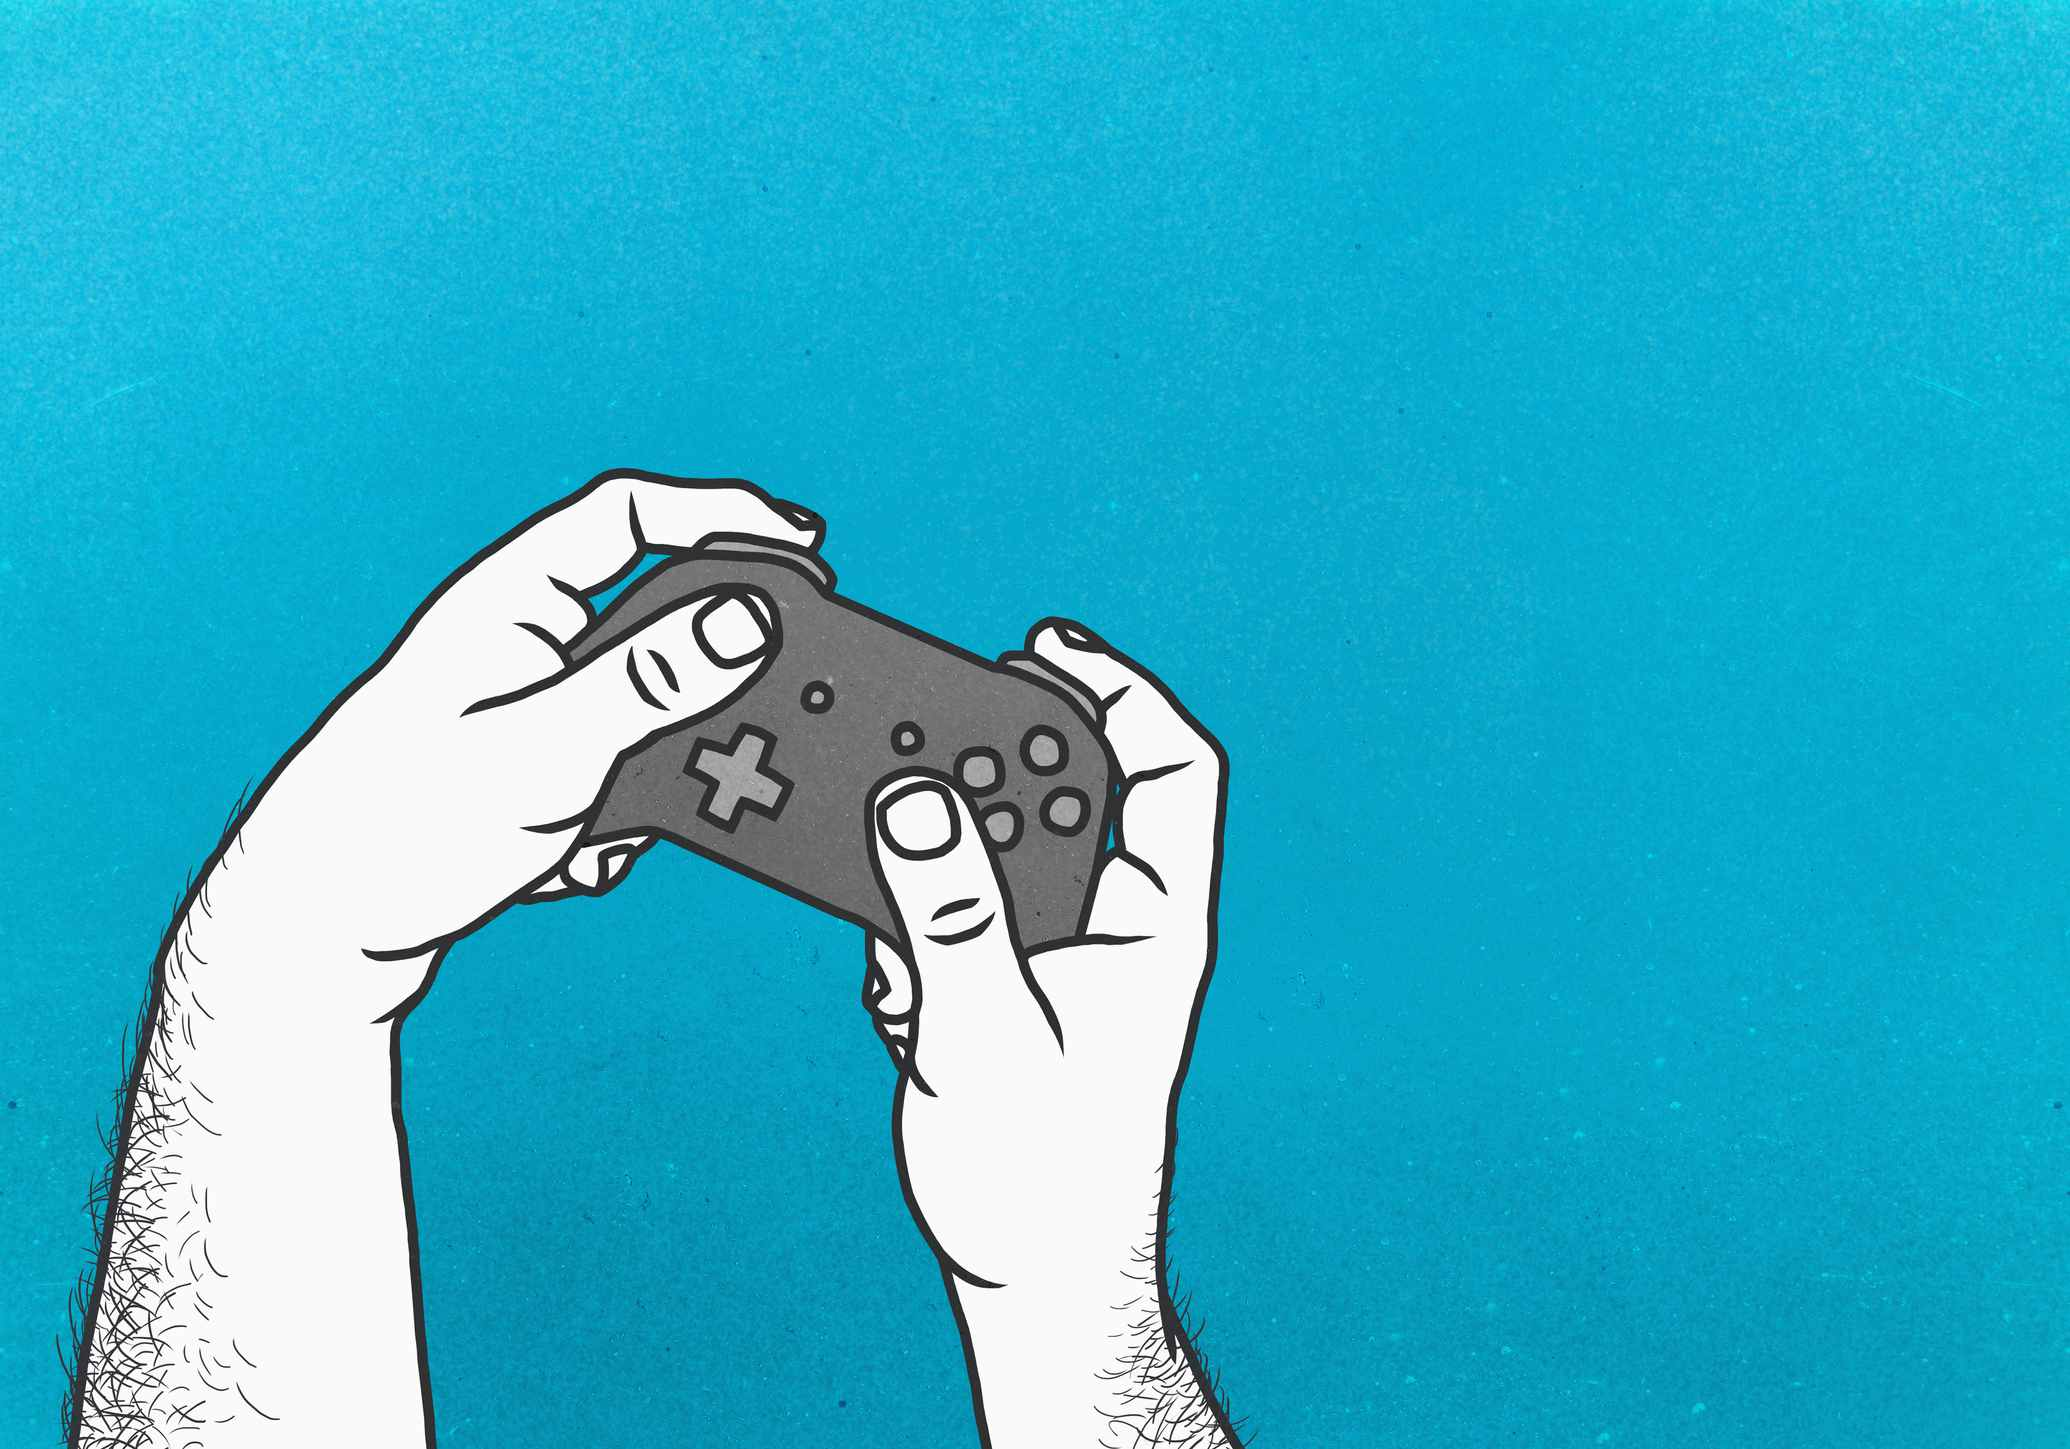 An illustration of a hands using a video game controller